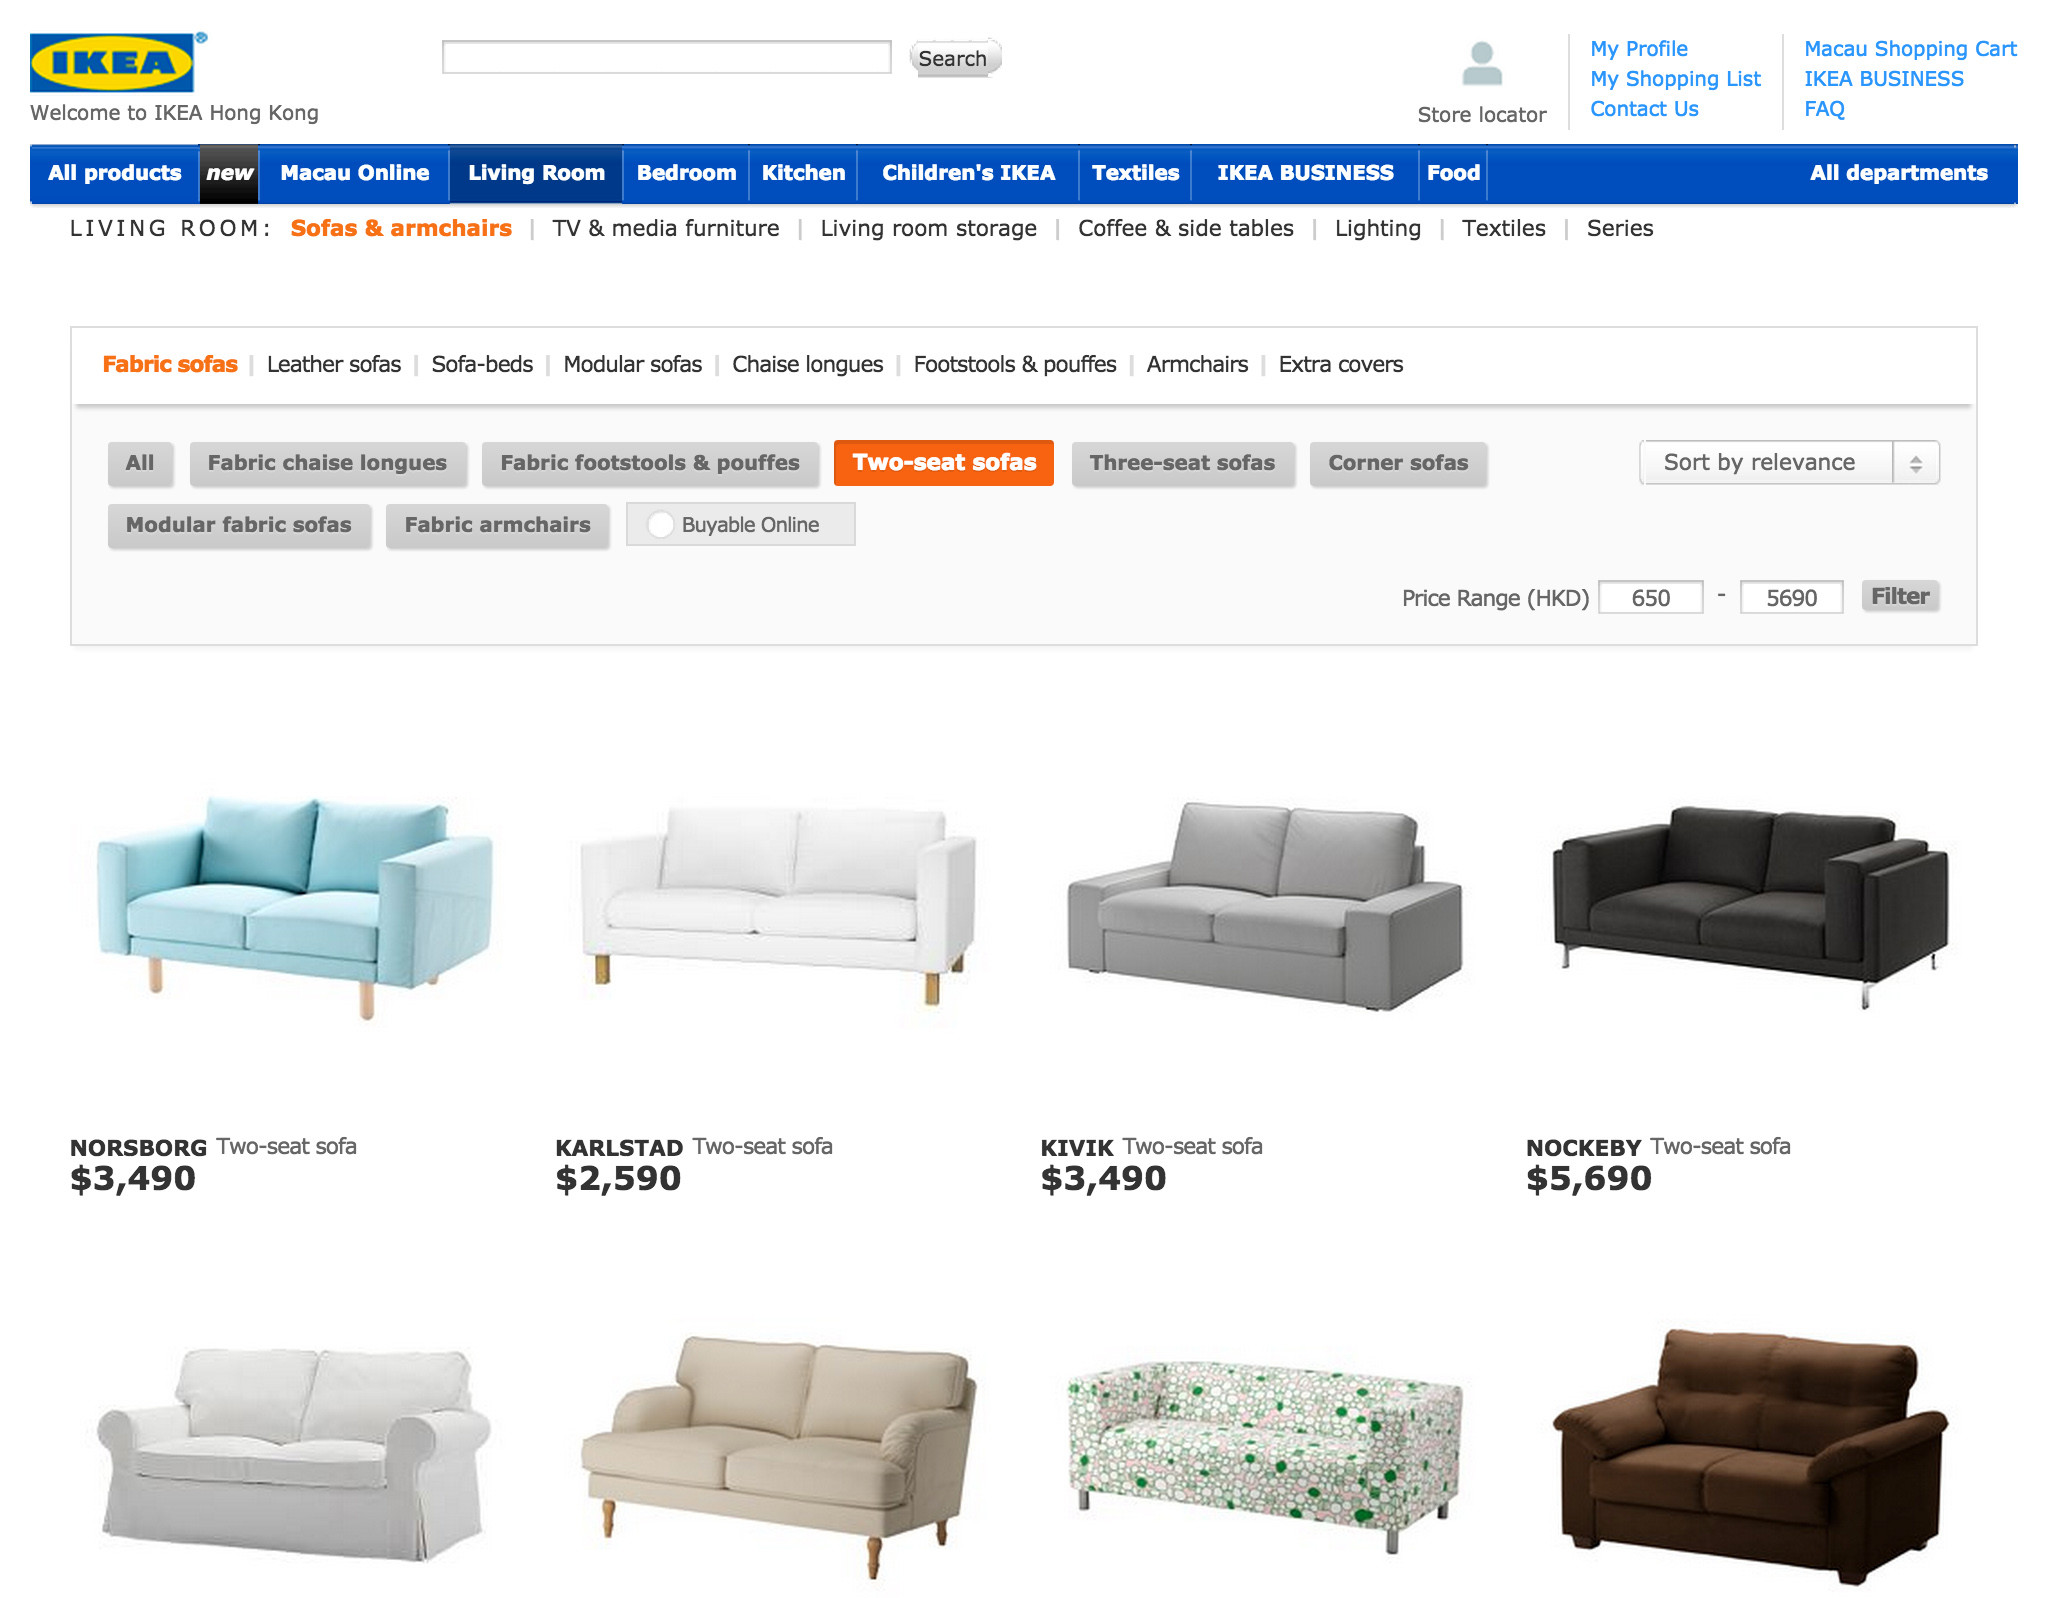 """Notice how Ikea enables """"category specific"""" filters such as """"two-seat sofas"""". If not provided, user would have read through each search result to find the information"""